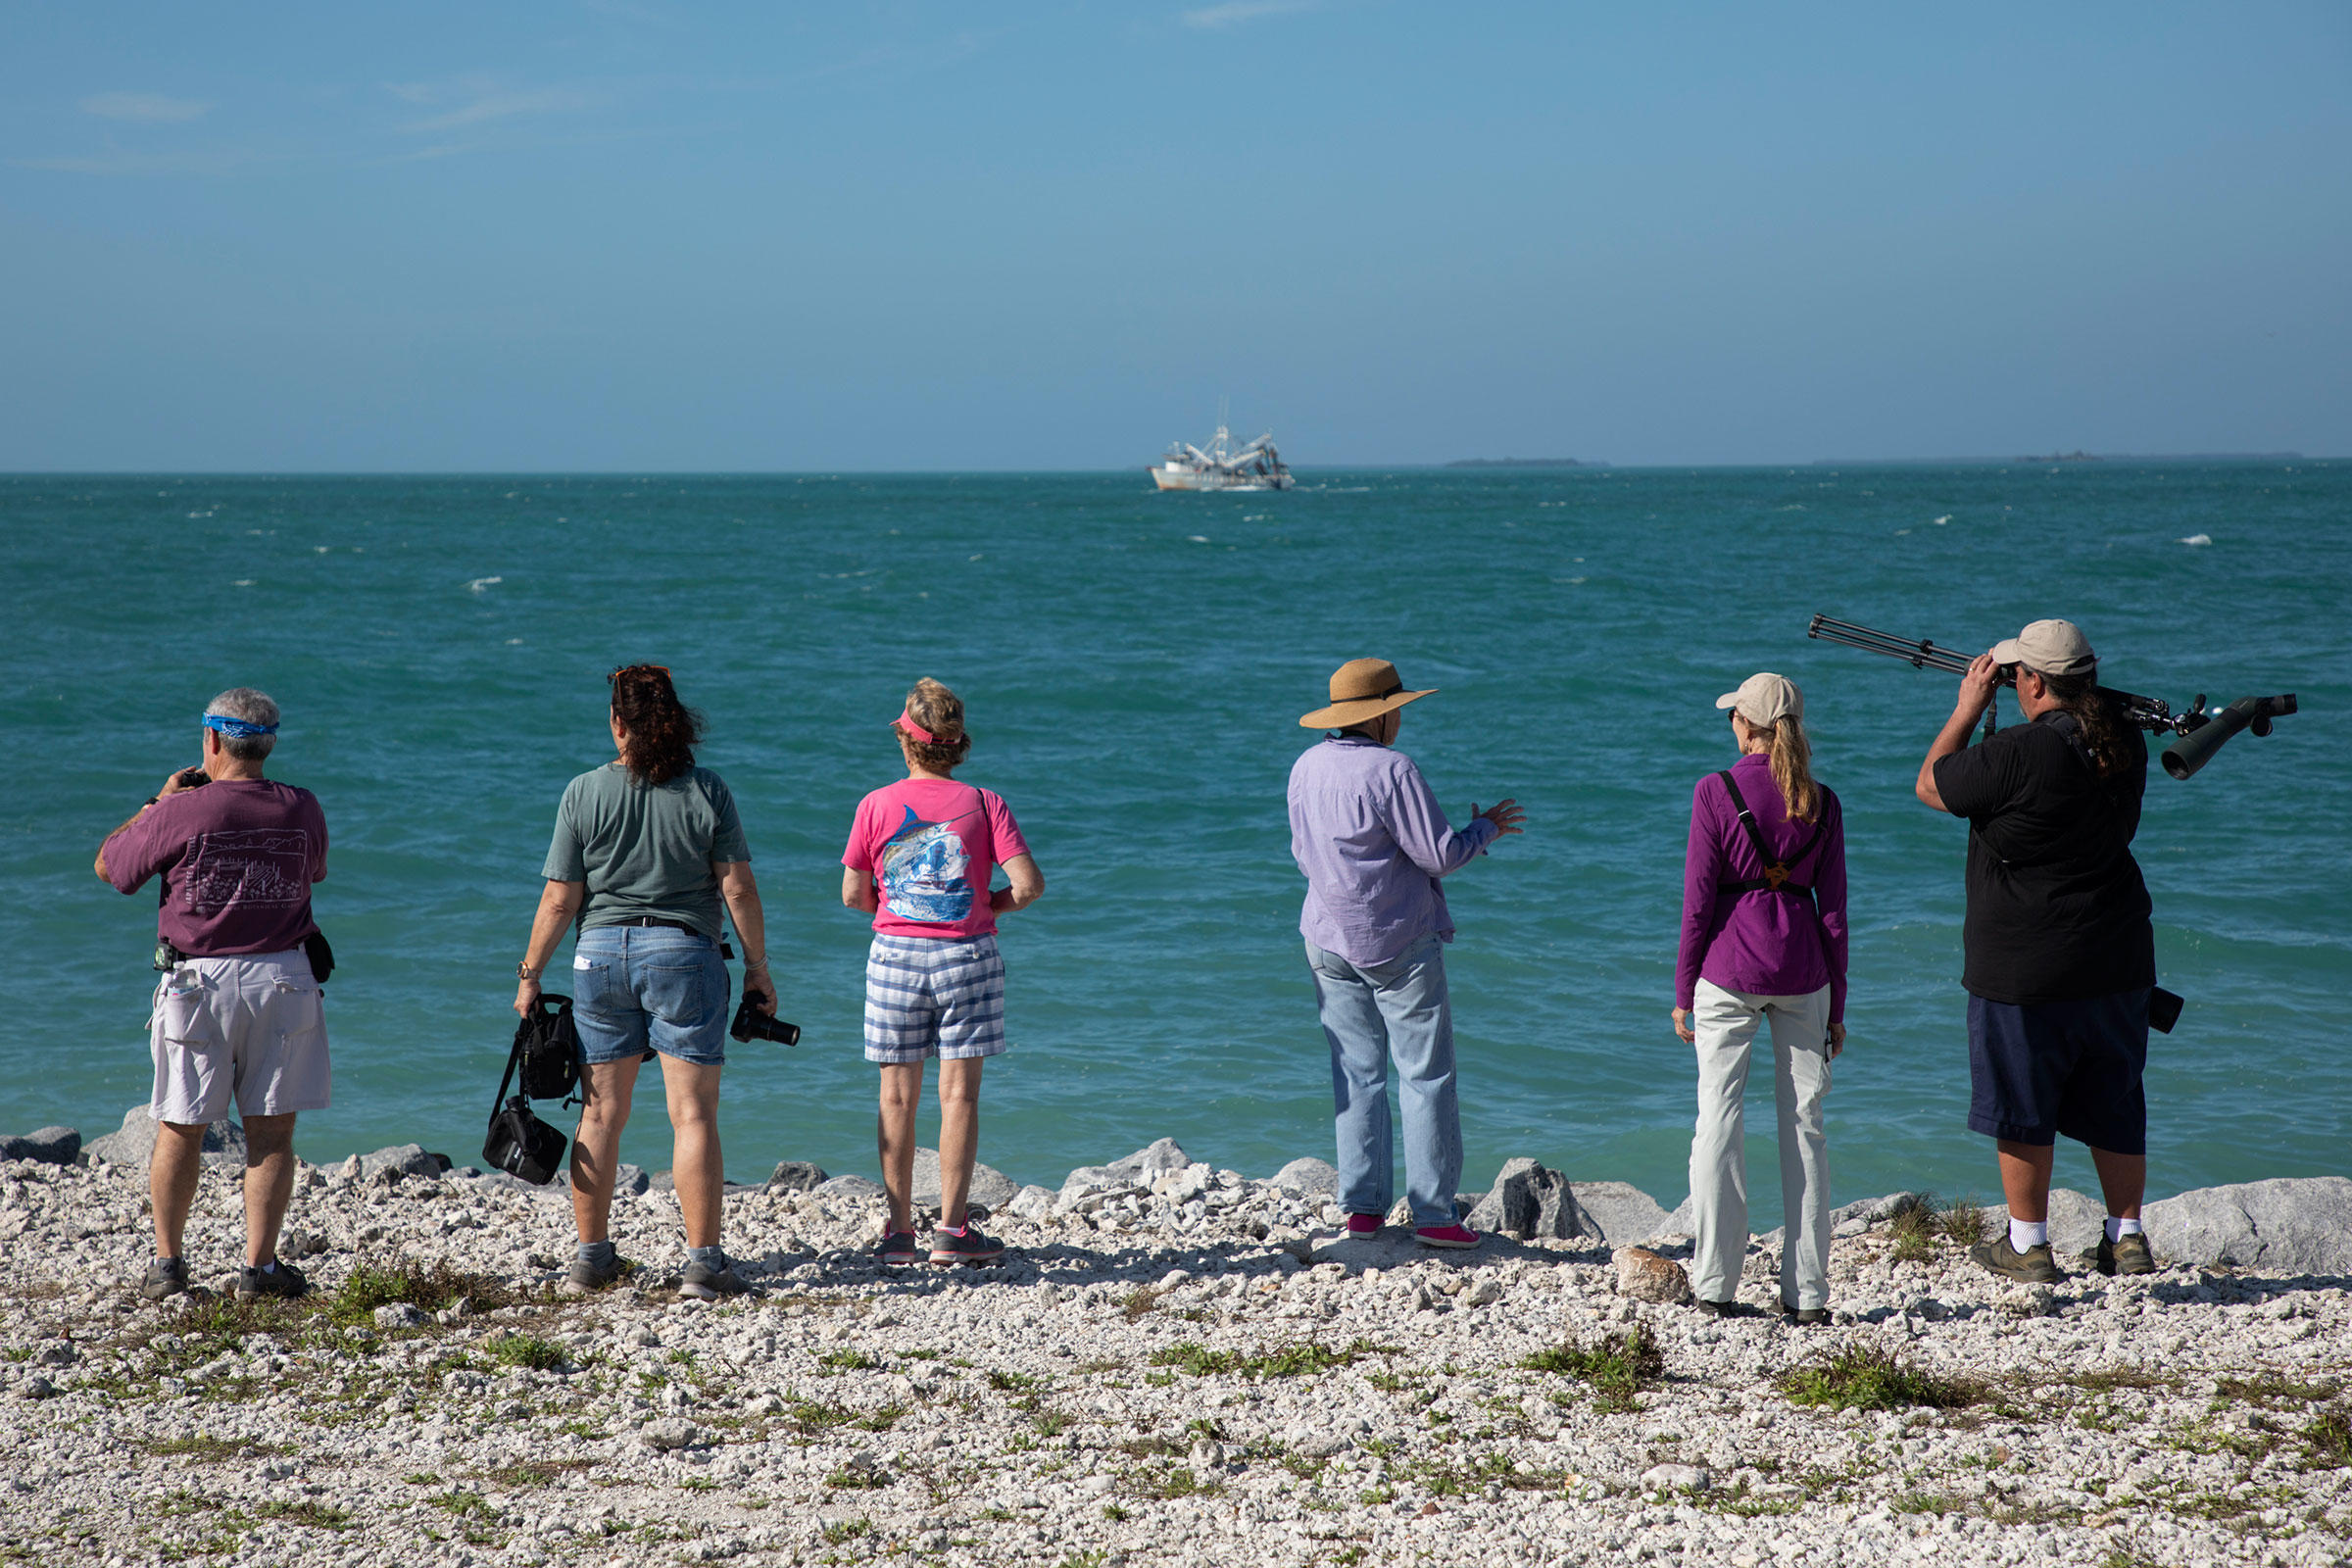 As Waters Continue To Rise, Florida's Keys Face A Daunting Future